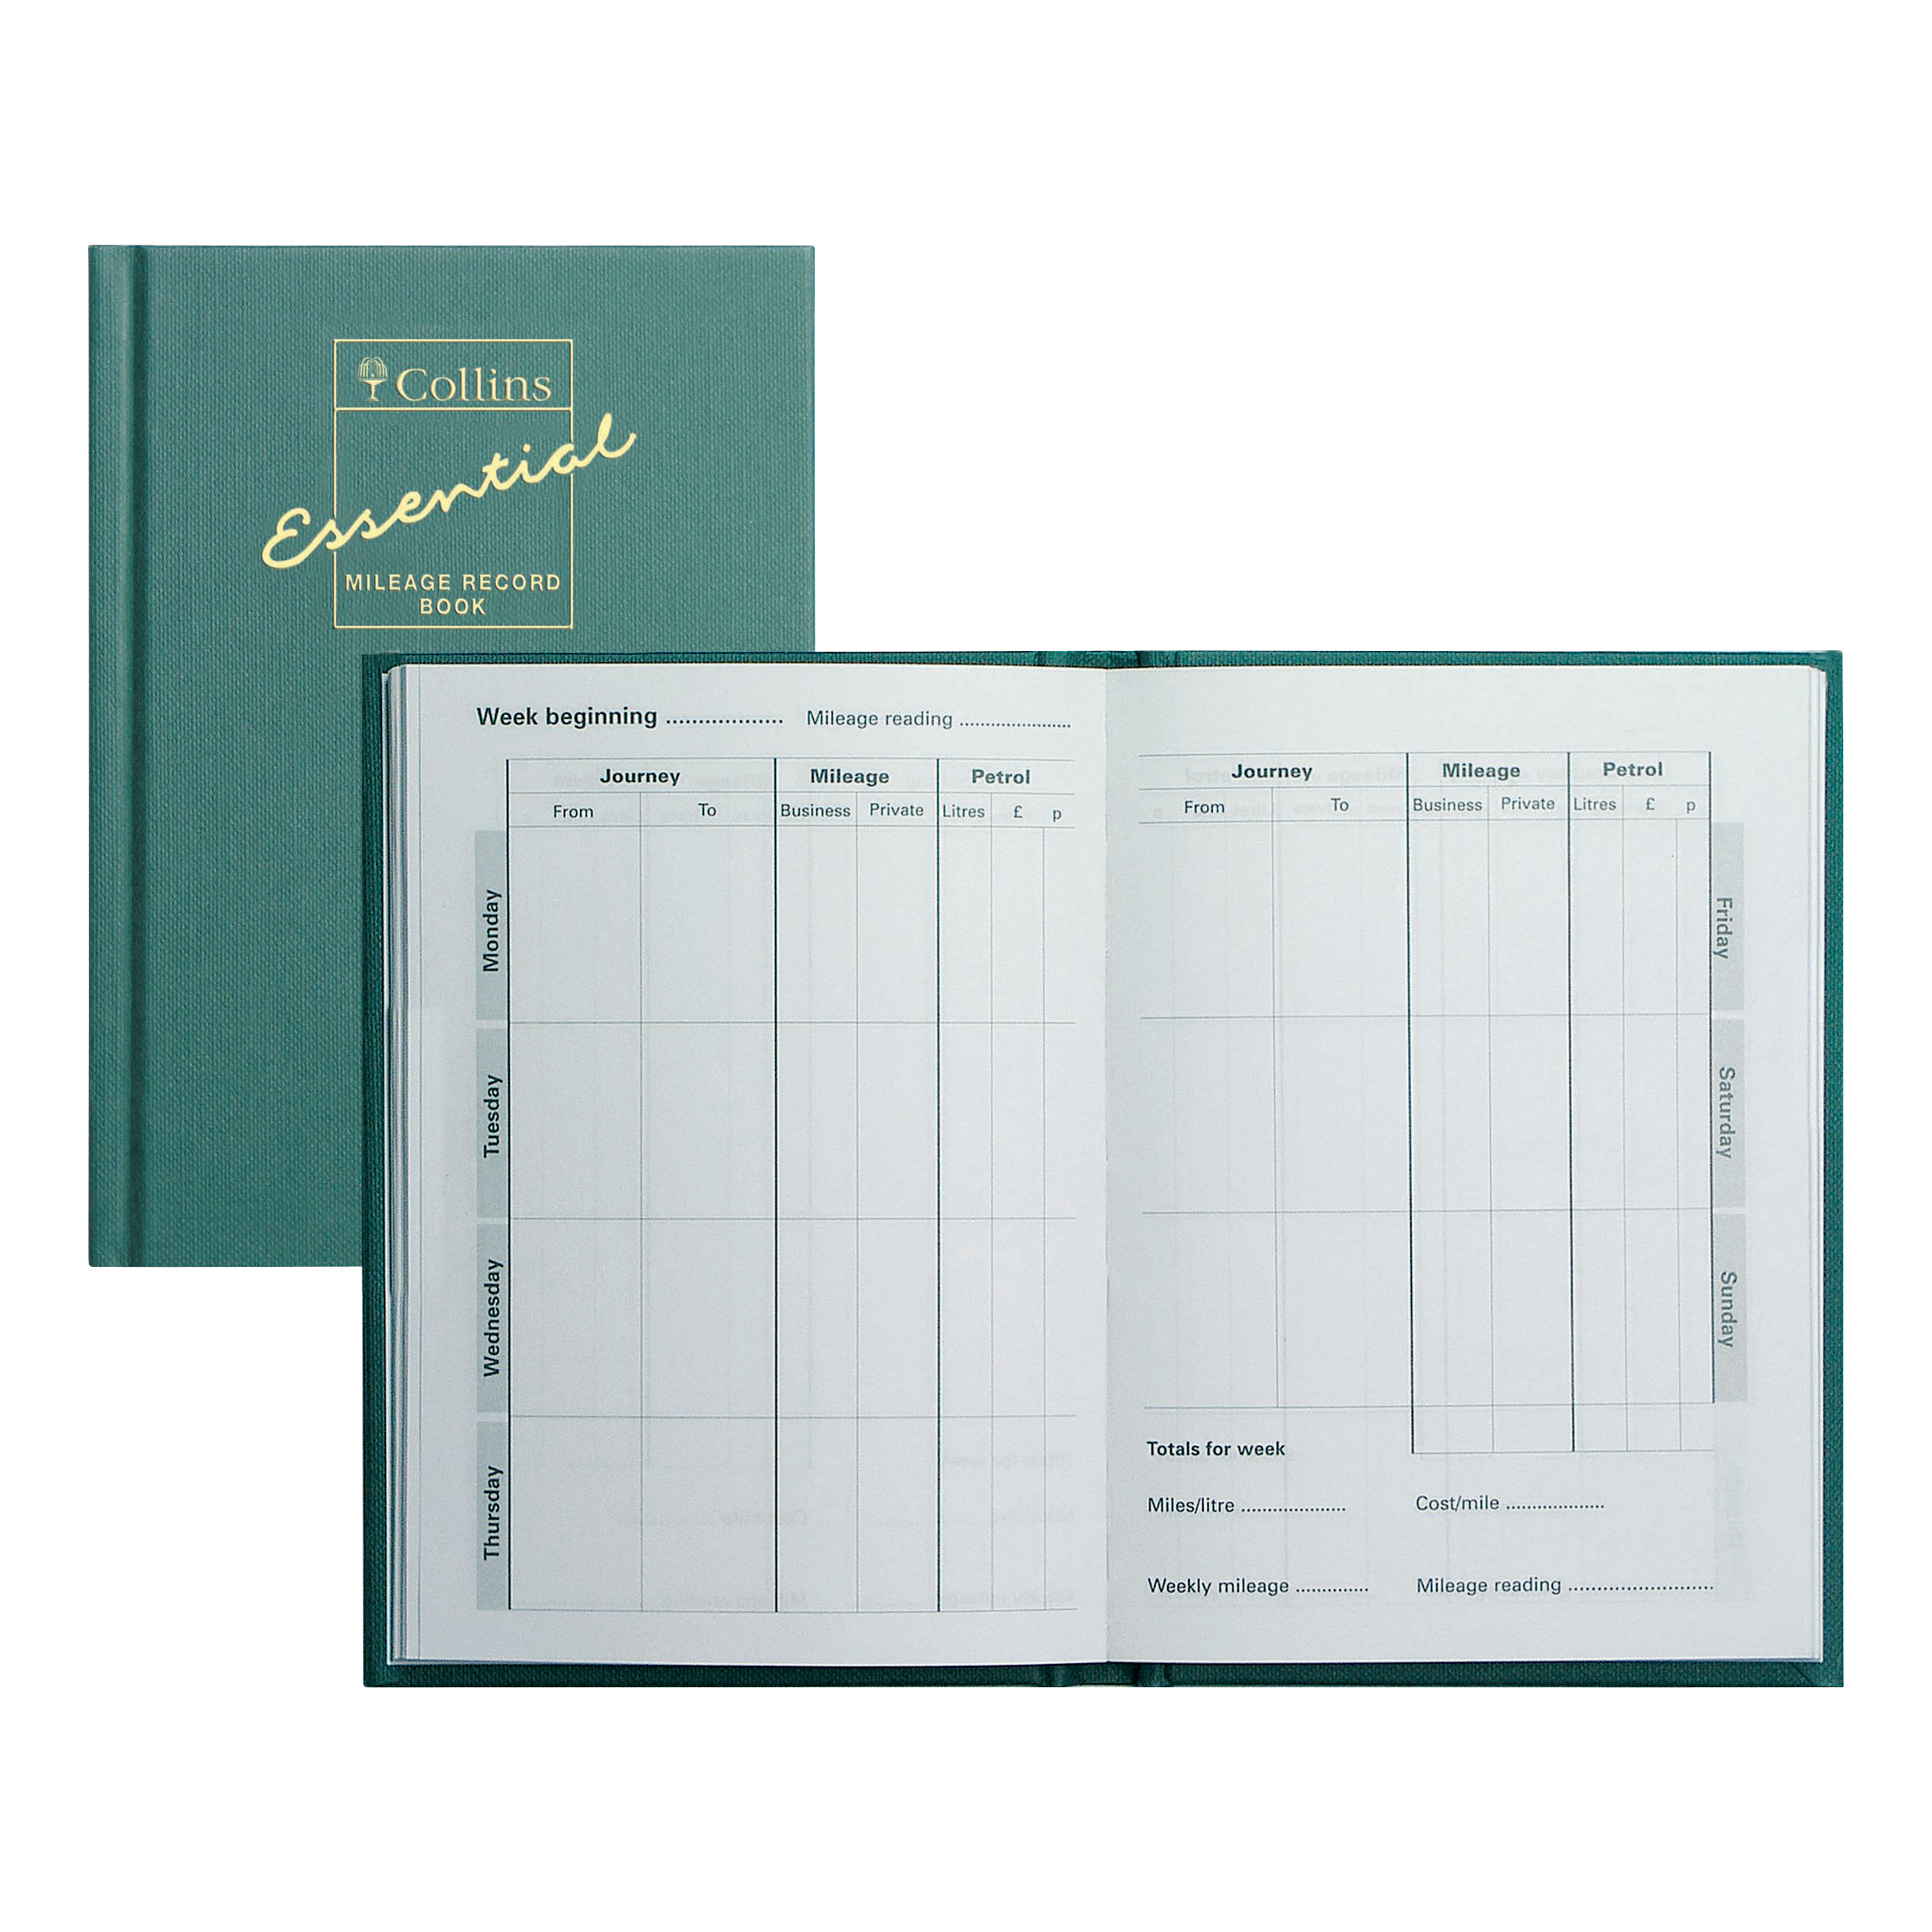 Mileage Collins Mileage Record Book 64 Pages 148x105mm Green Ref MRB1